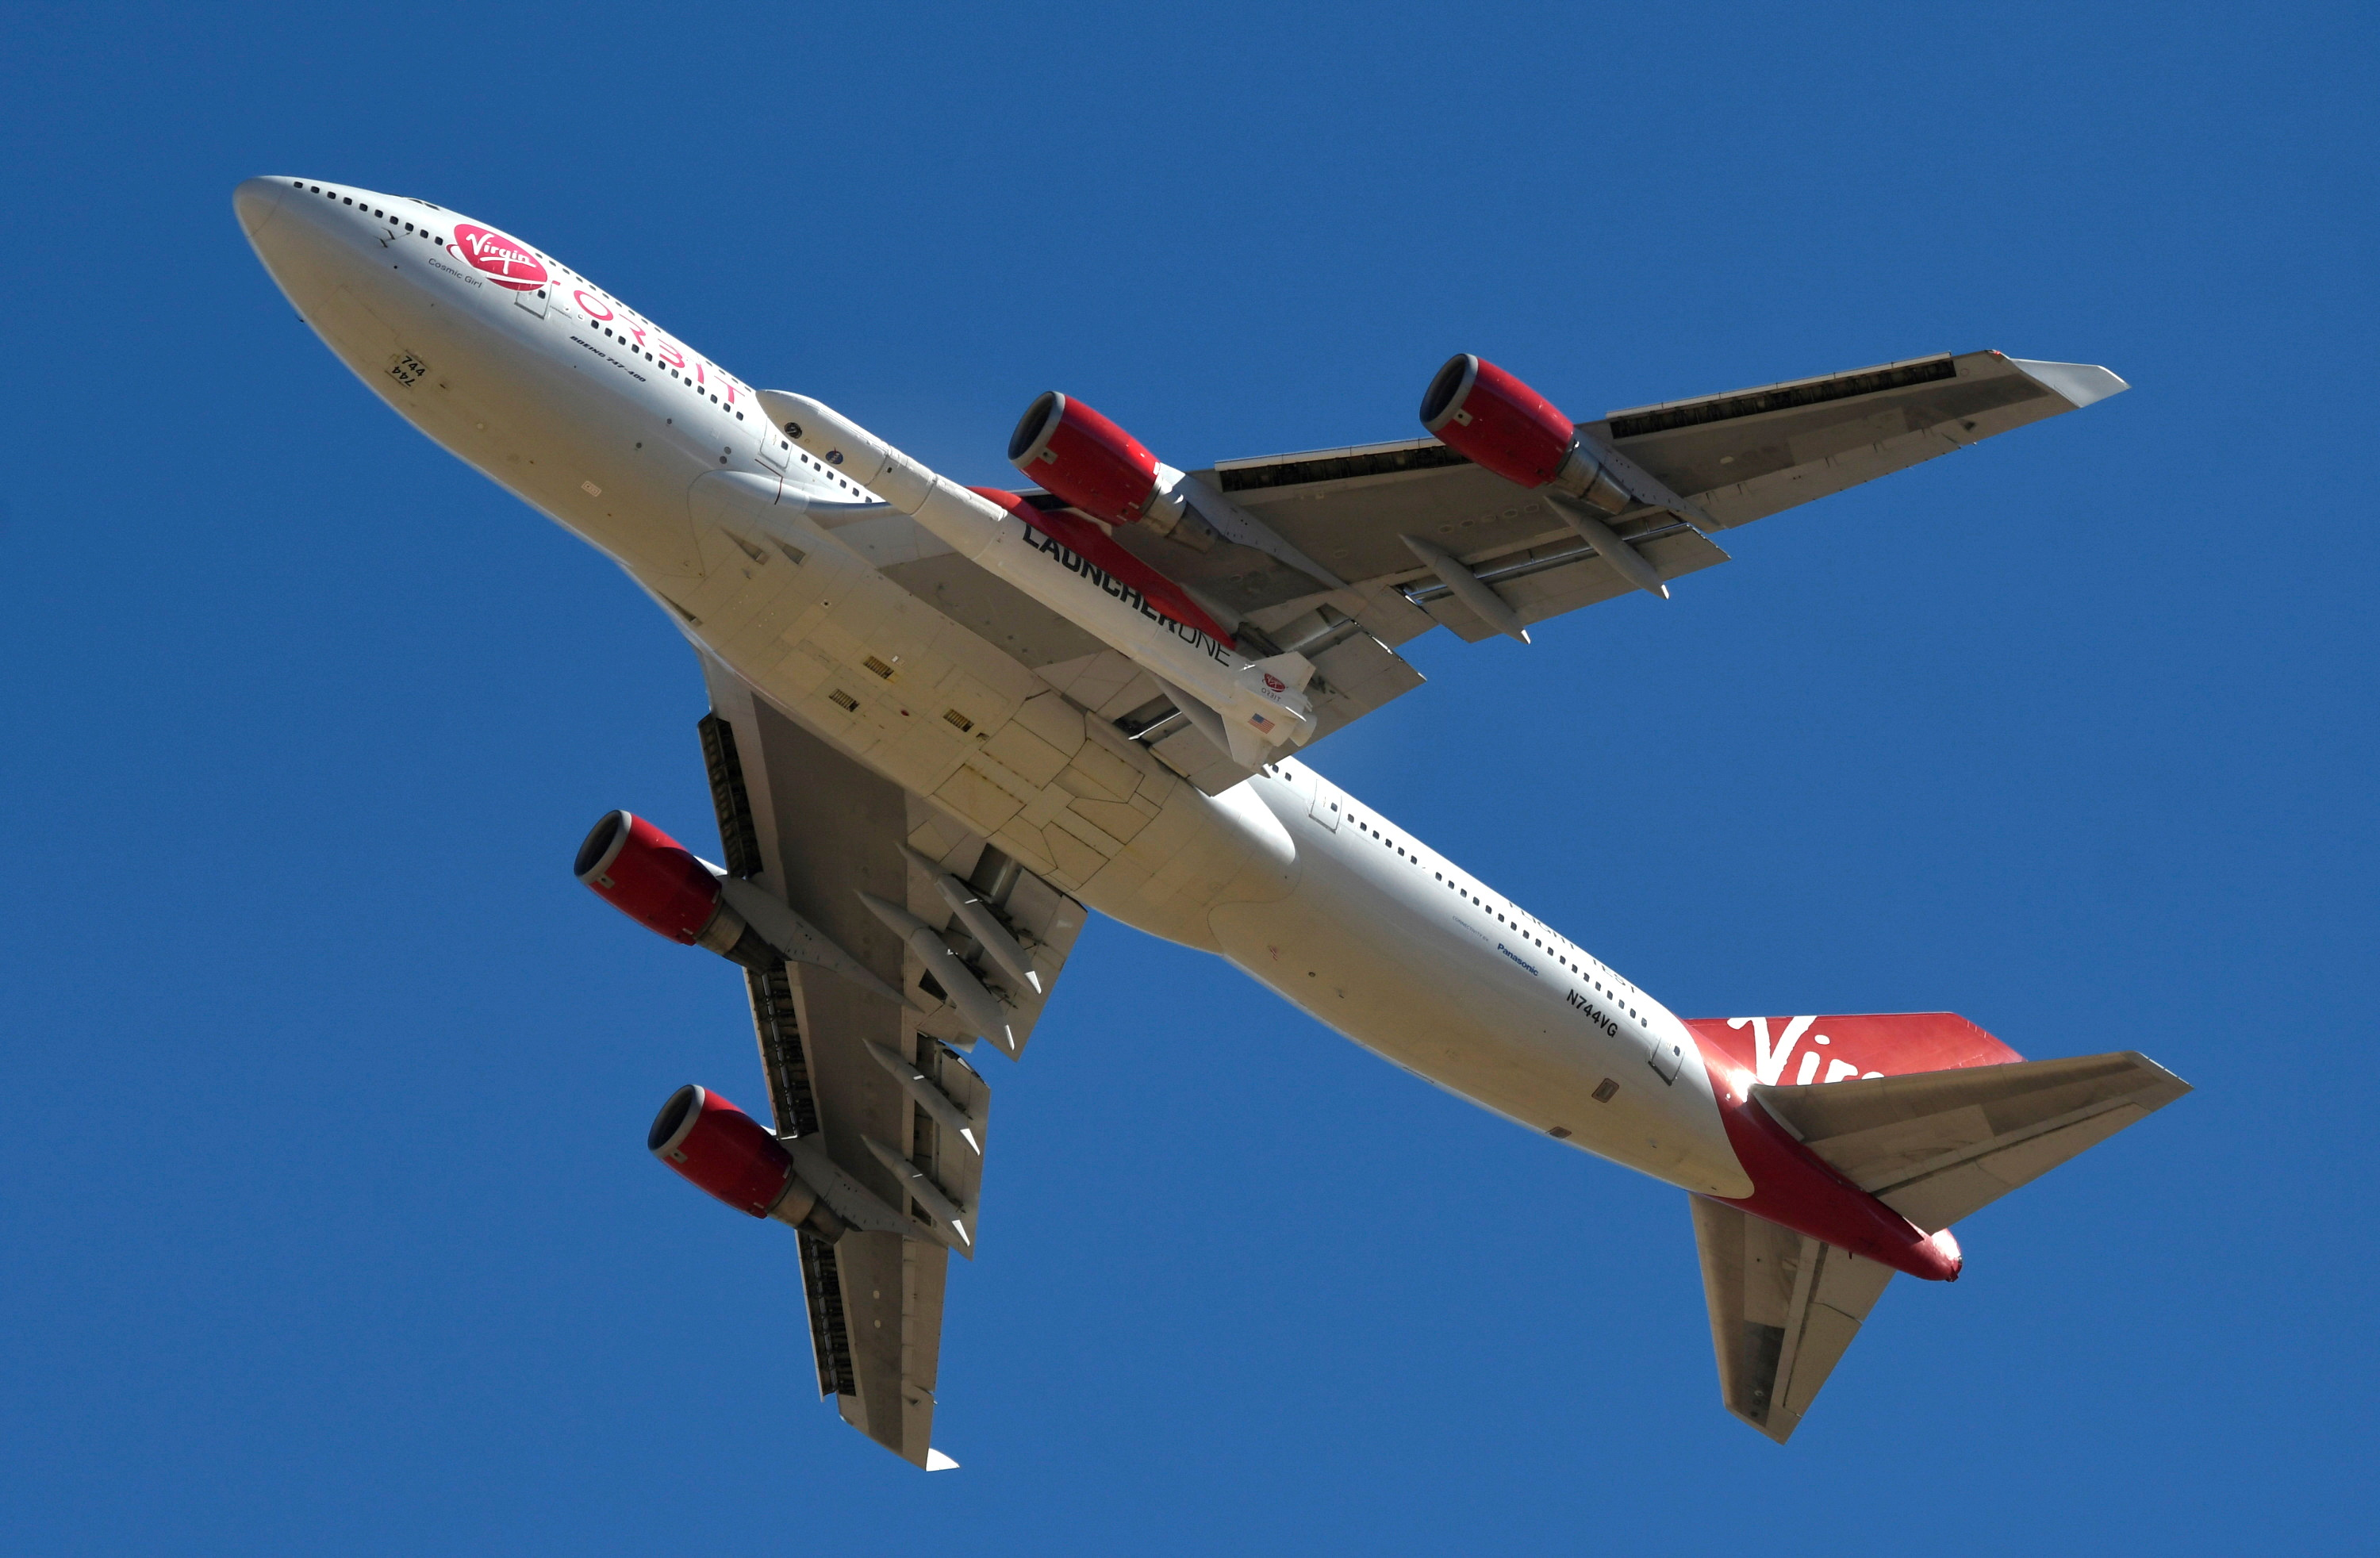 A view of Richard Branson's Virgin Orbit, with a rocket underneath the wing of a modified Boeing 747 jetliner, during test launch of its high-altitude launch system for satellites from Mojave, California, U.S. January 17, 2021.  REUTERS/Gene Blevins/File Photo